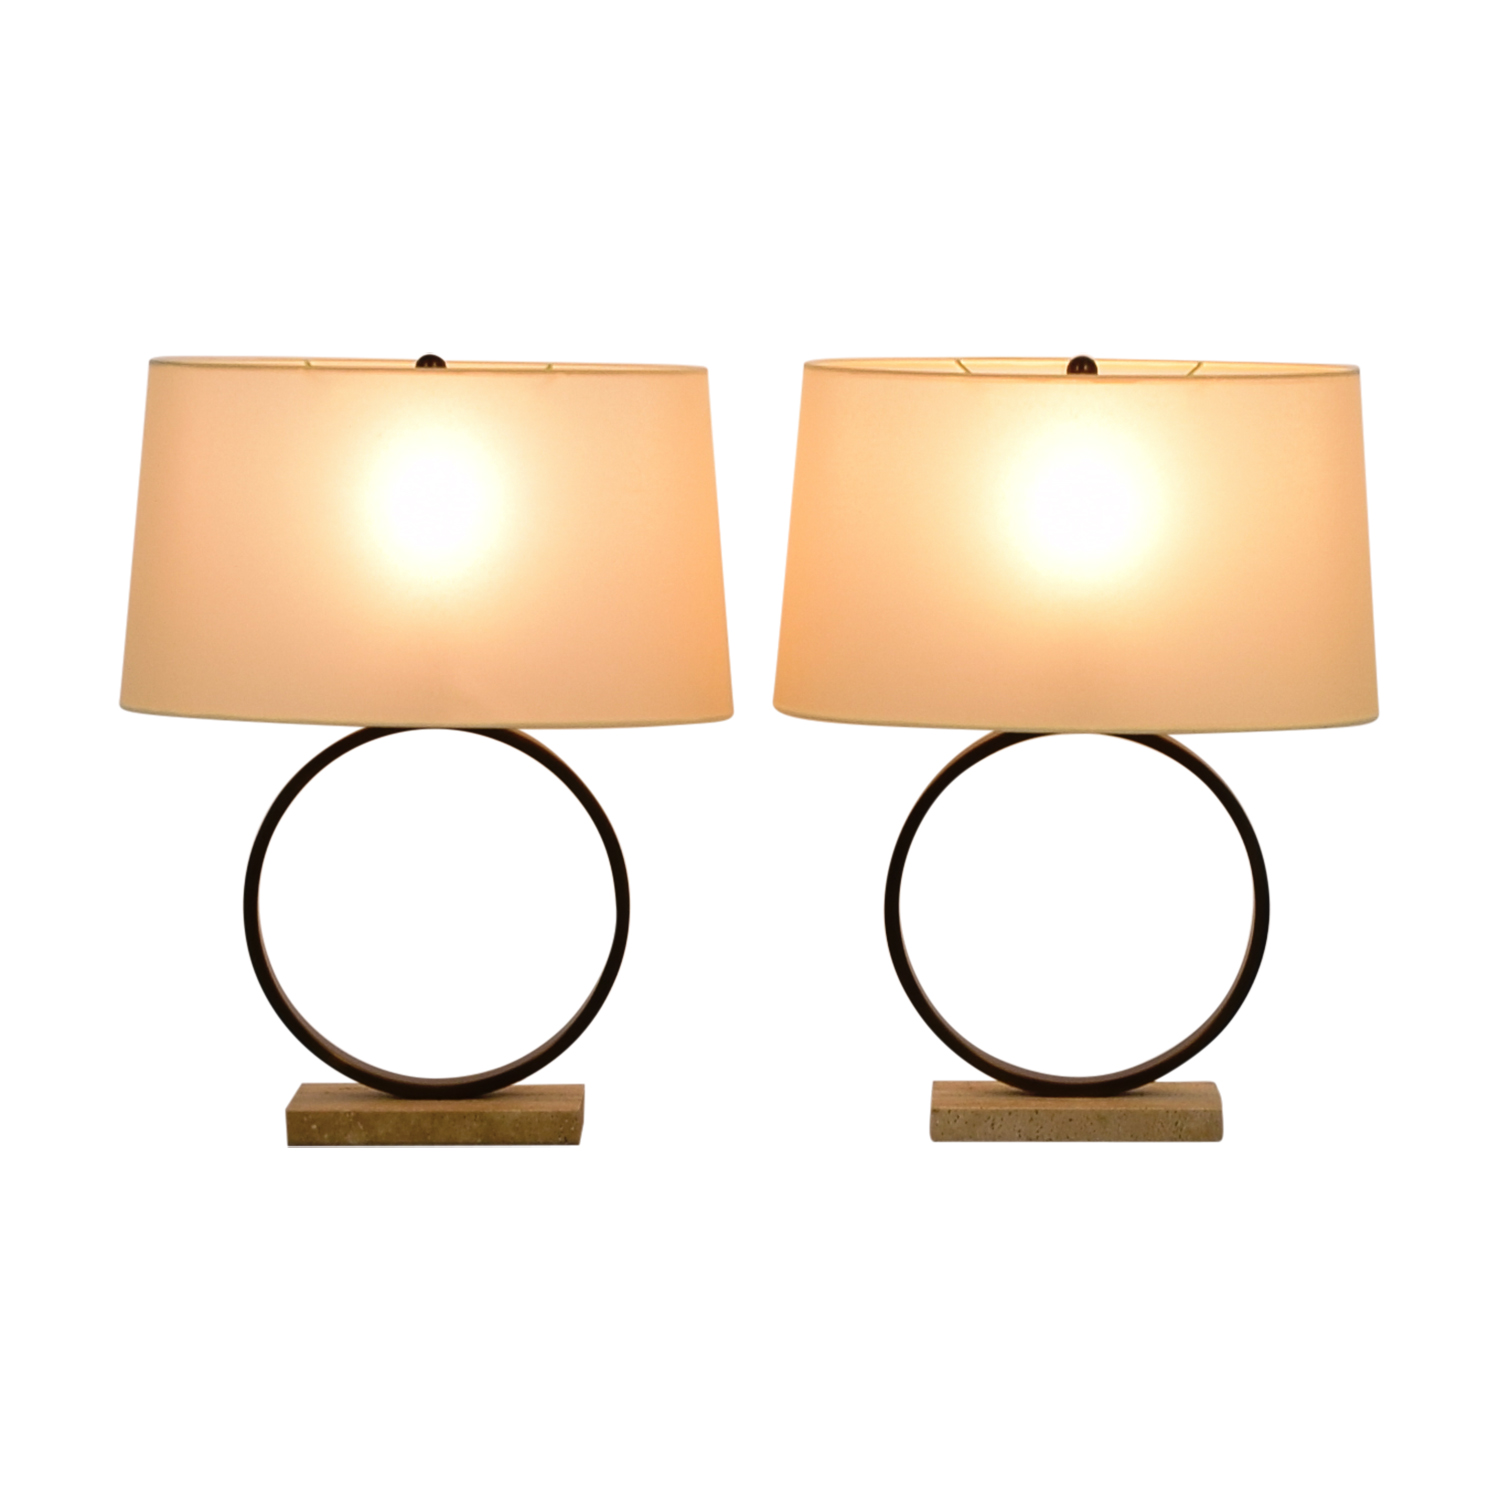 Mitchell Gold + Bob Williams Mitchell Gold + Bob Williams Marco Circle Table Lamps on sale